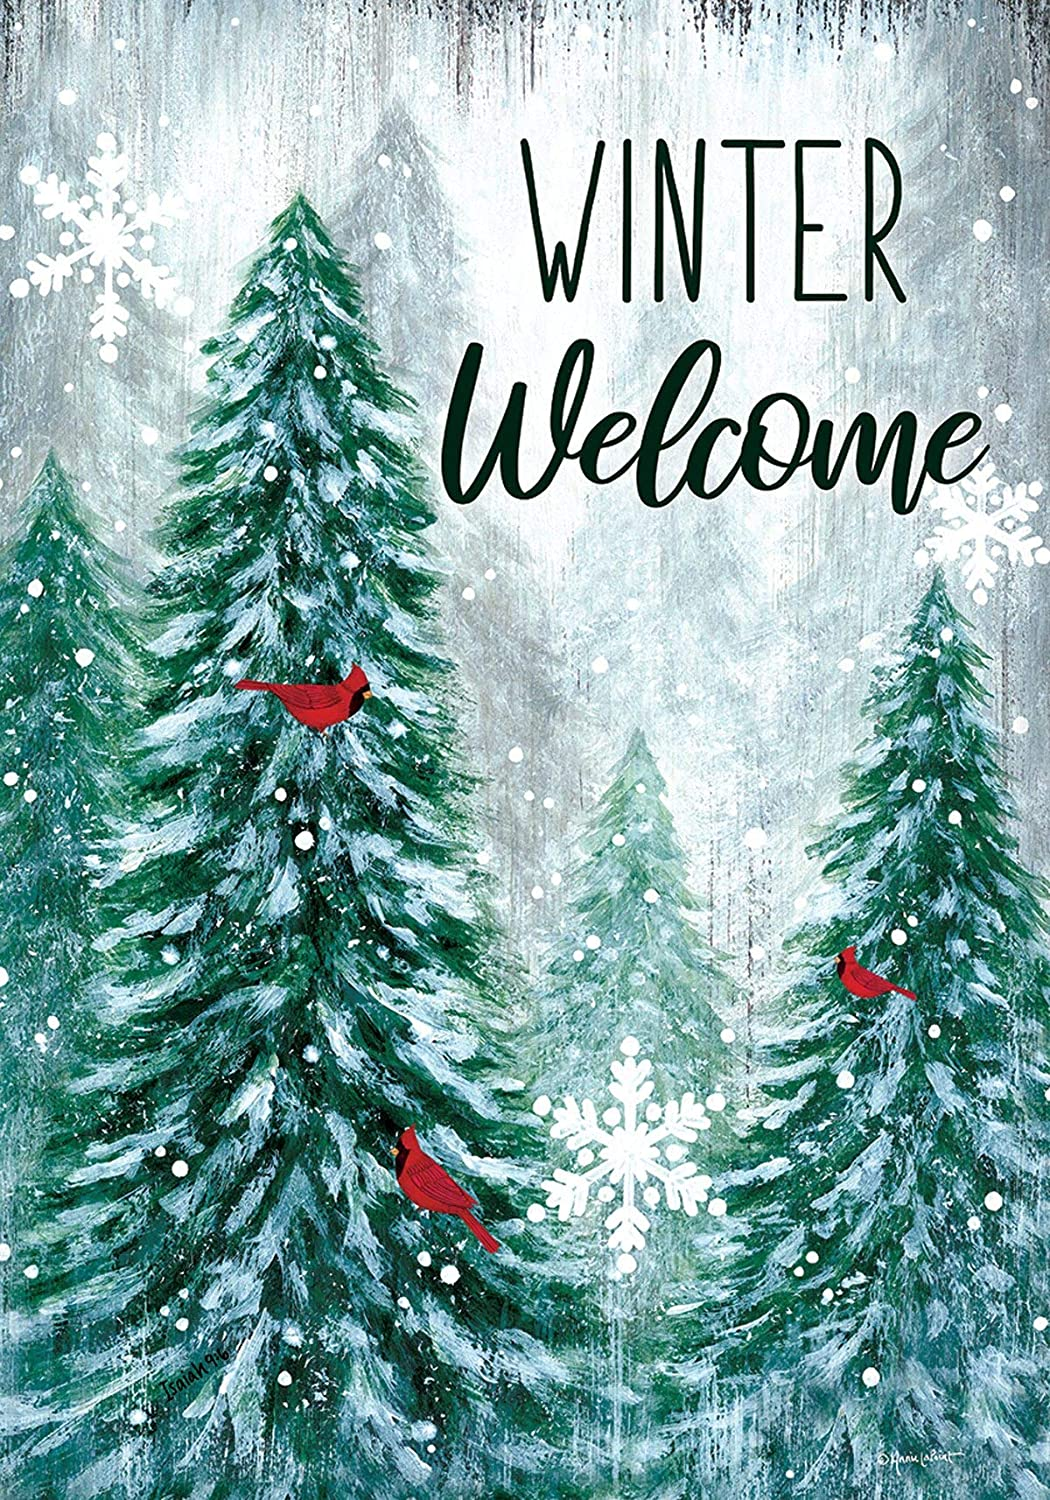 Custom Decor Winter Wonderland Welcome - Garden Size, Decorative Double Sided, Licensed and Copyrighted Flag - Printed in The USA Inc. - 12 Inch X 18 Inch Approx. Size